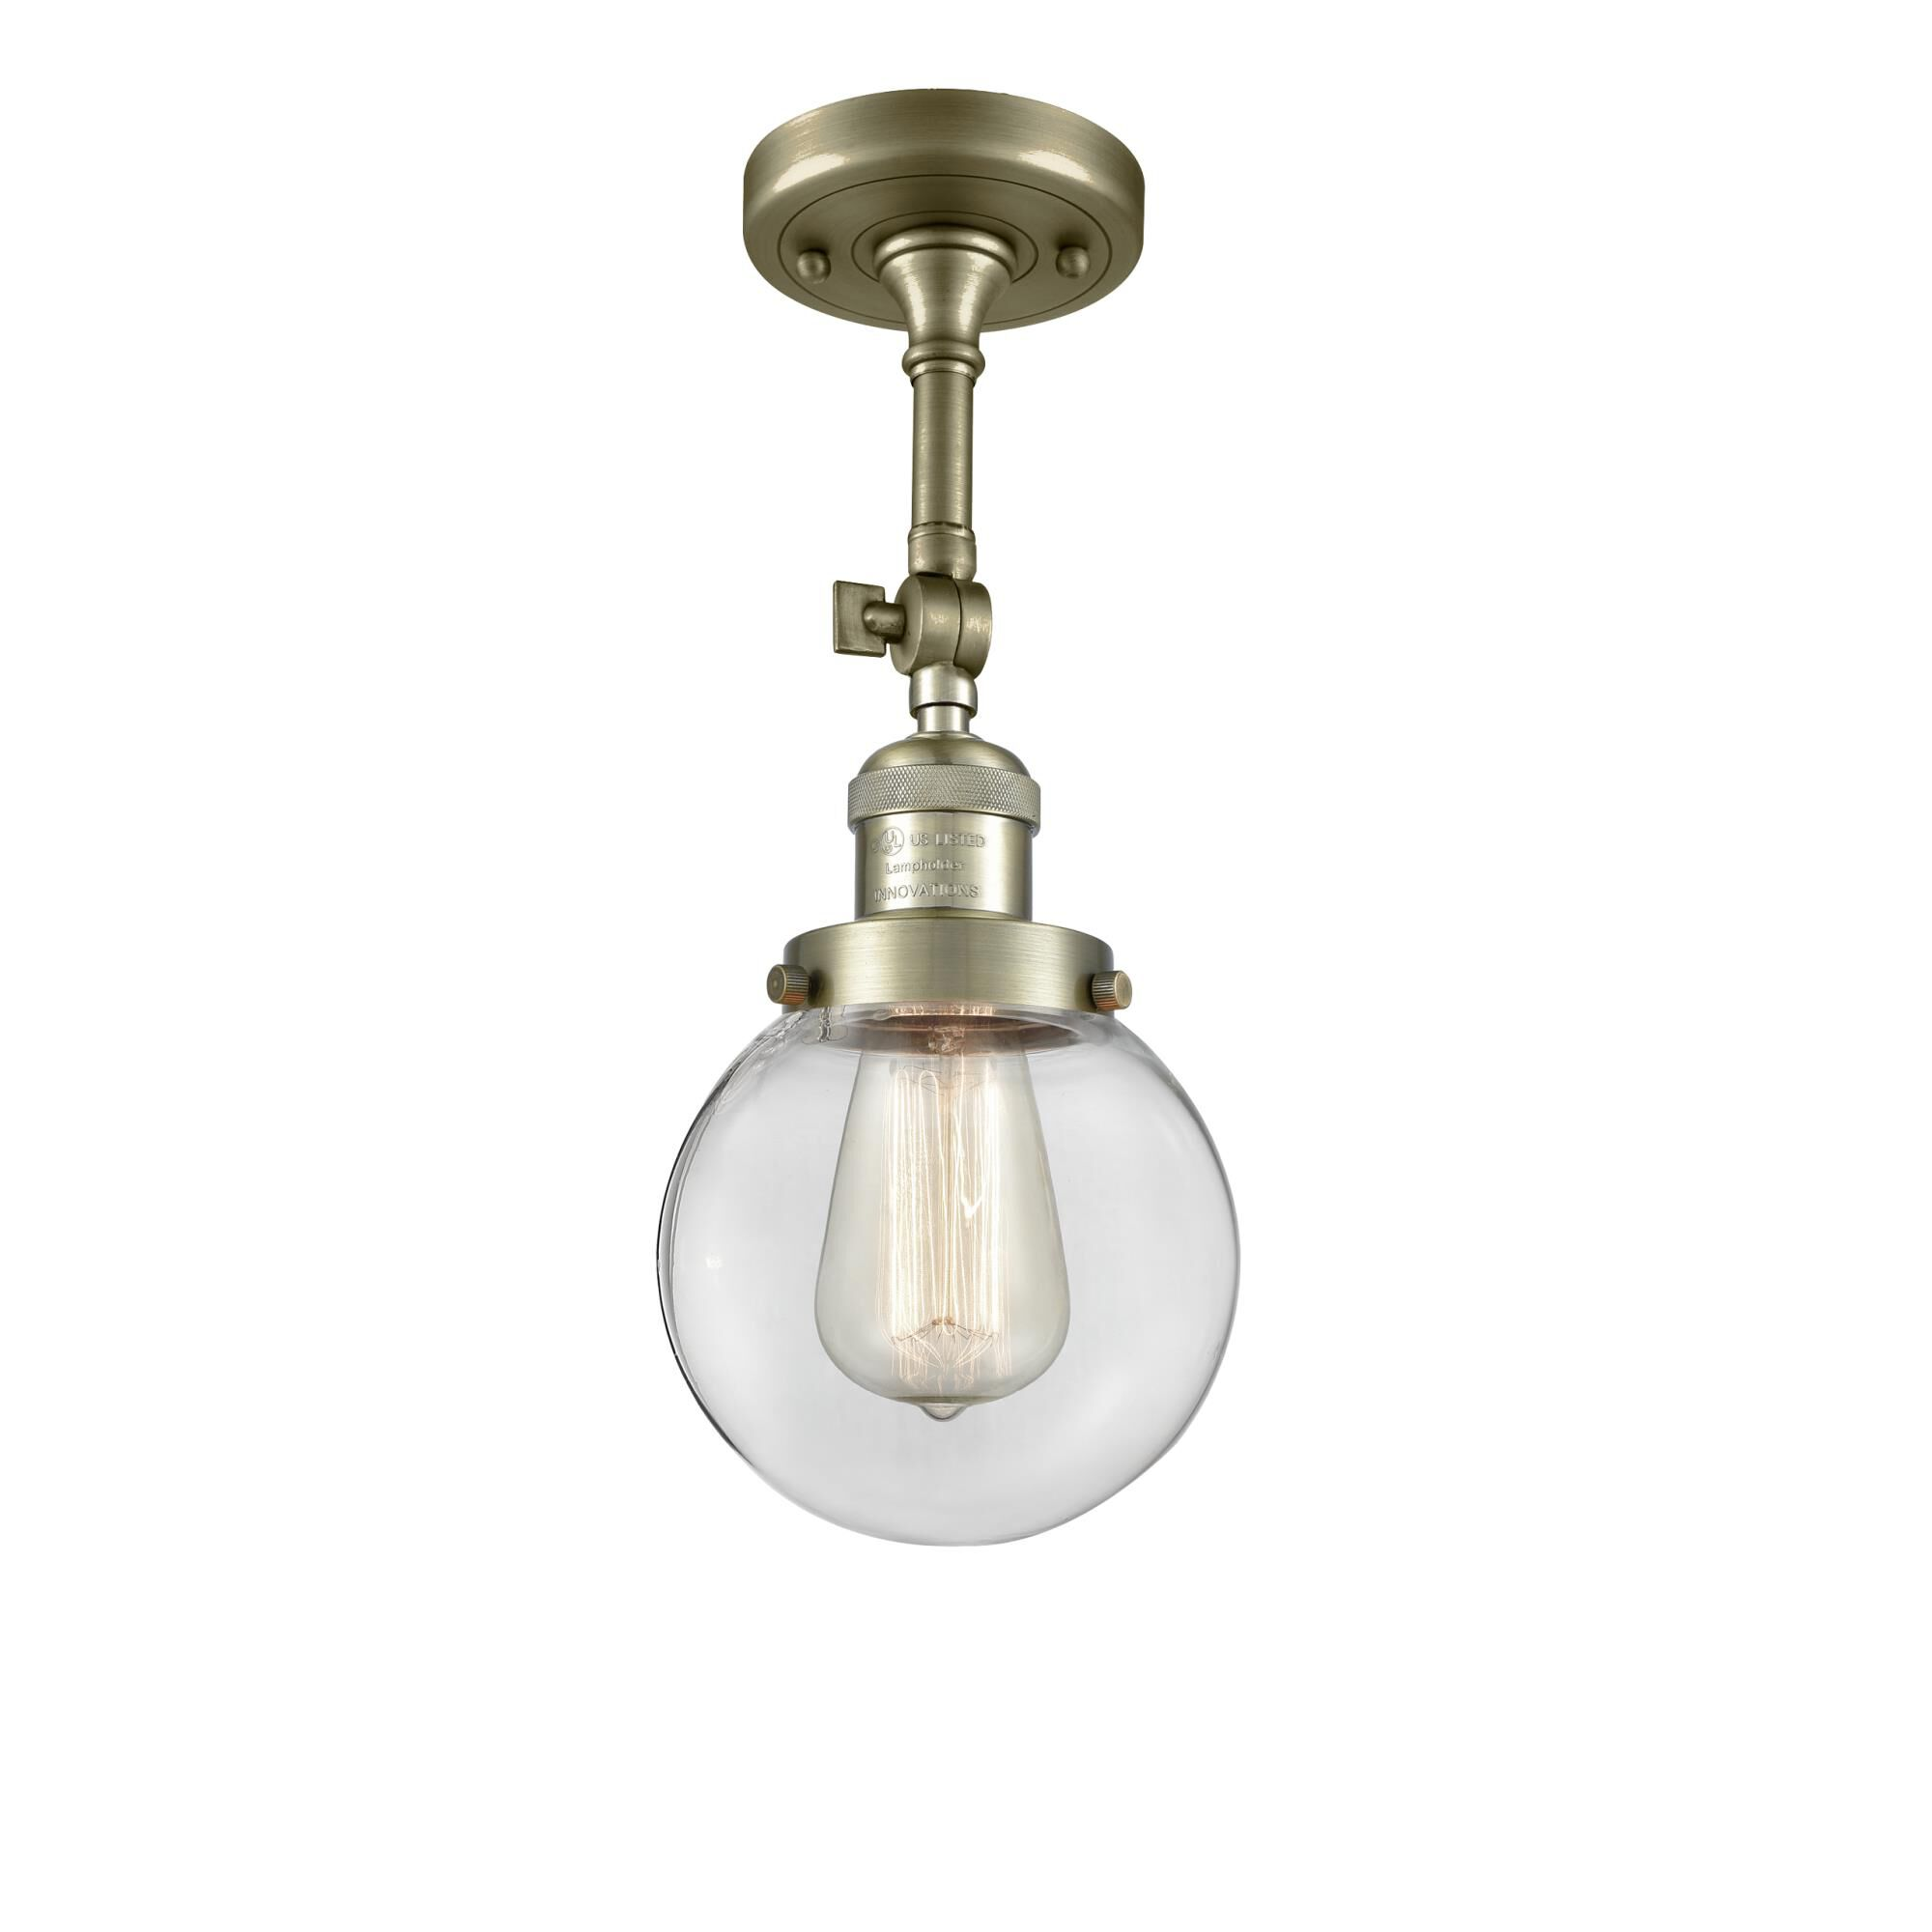 Innovations Lighting Bruno Marashlian Beacon 6 Inch 1 Light LED Semi Flush Mount Beacon - 201F-AB-G202-6-LED - Restoration-Vintage Semi Flush Mount